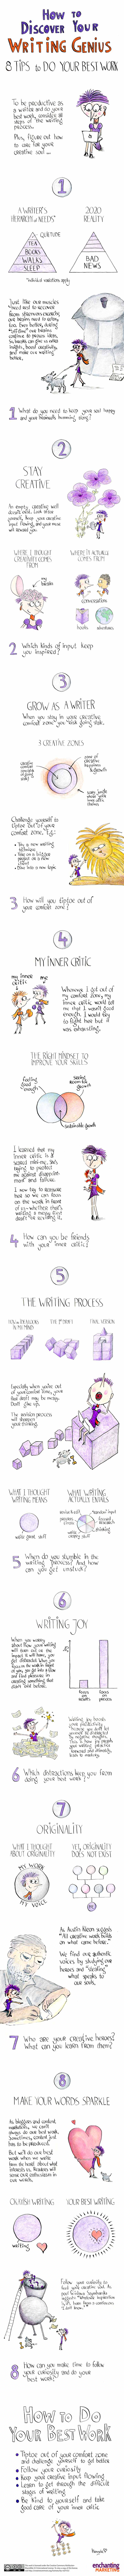 How to Discover Your Writing Genius